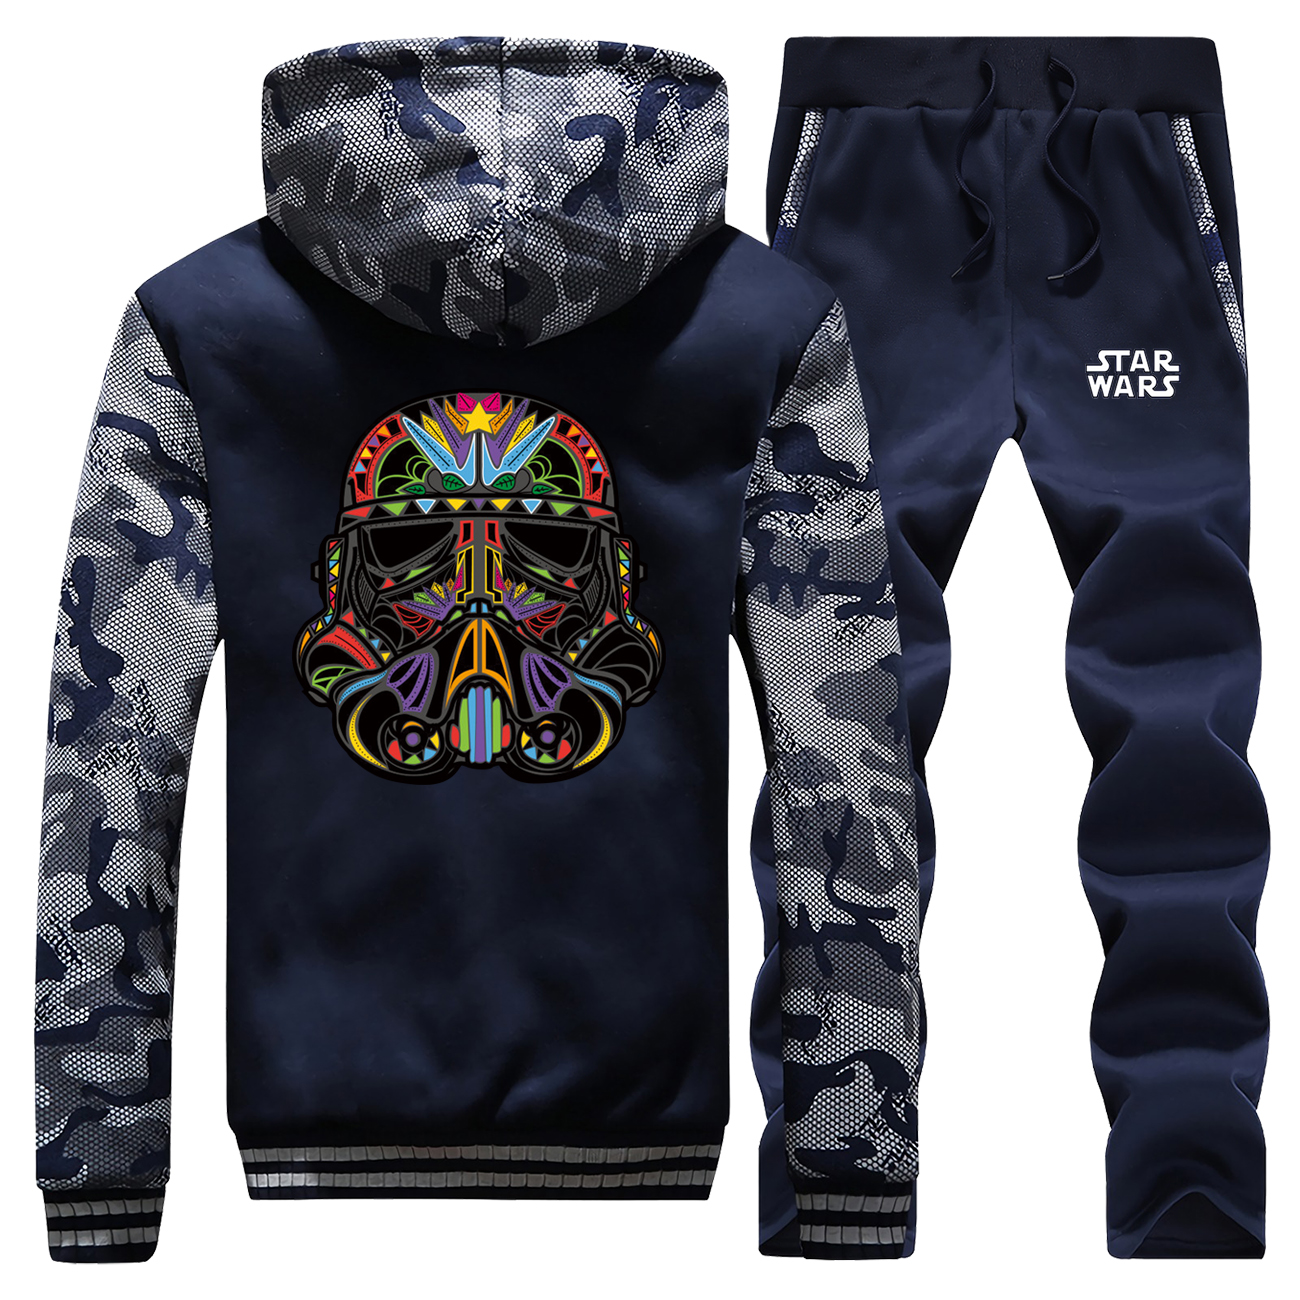 Star Wars Funny Stormtrooper Winter Hot Sale Sportswear Mens Camouflage Hooded Warm Jackets Suit Coat Thick+Pants 2 Piece Set